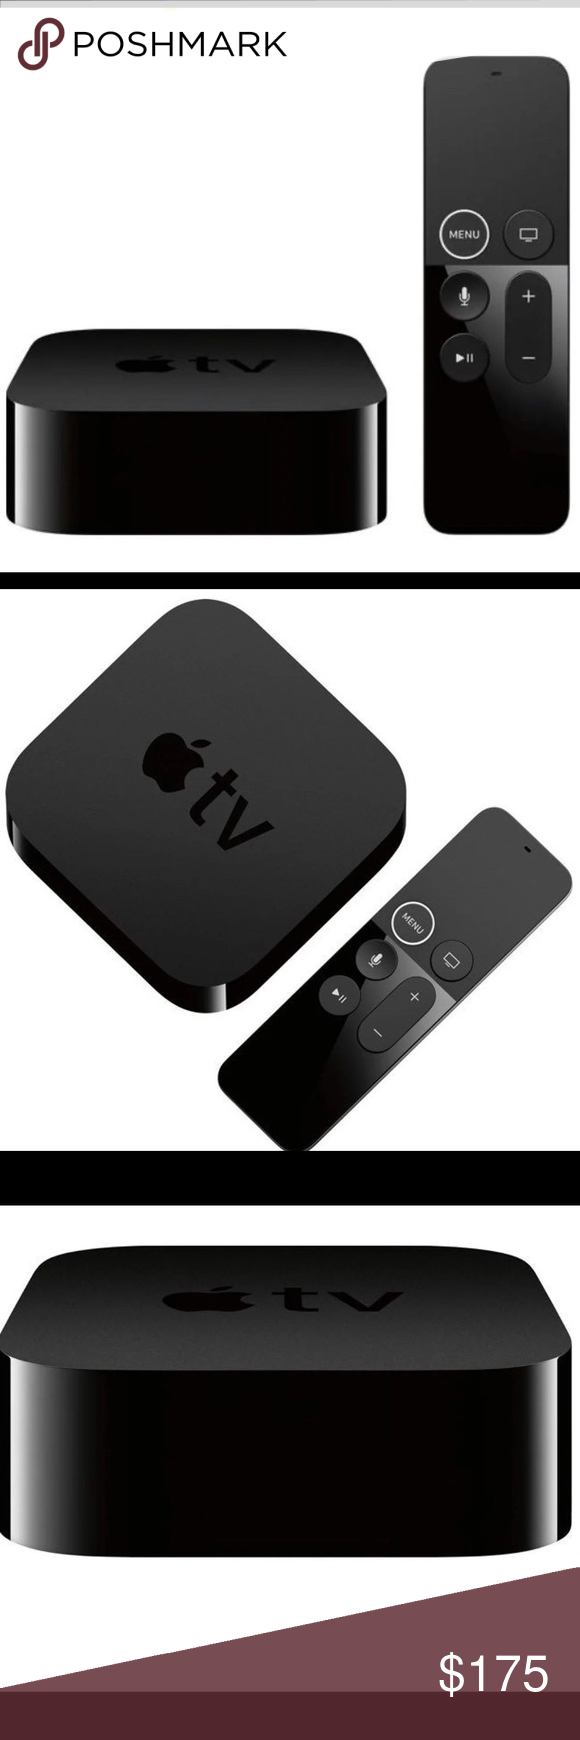 Apple TV 32GB (latest model)4K HD From TV shows to